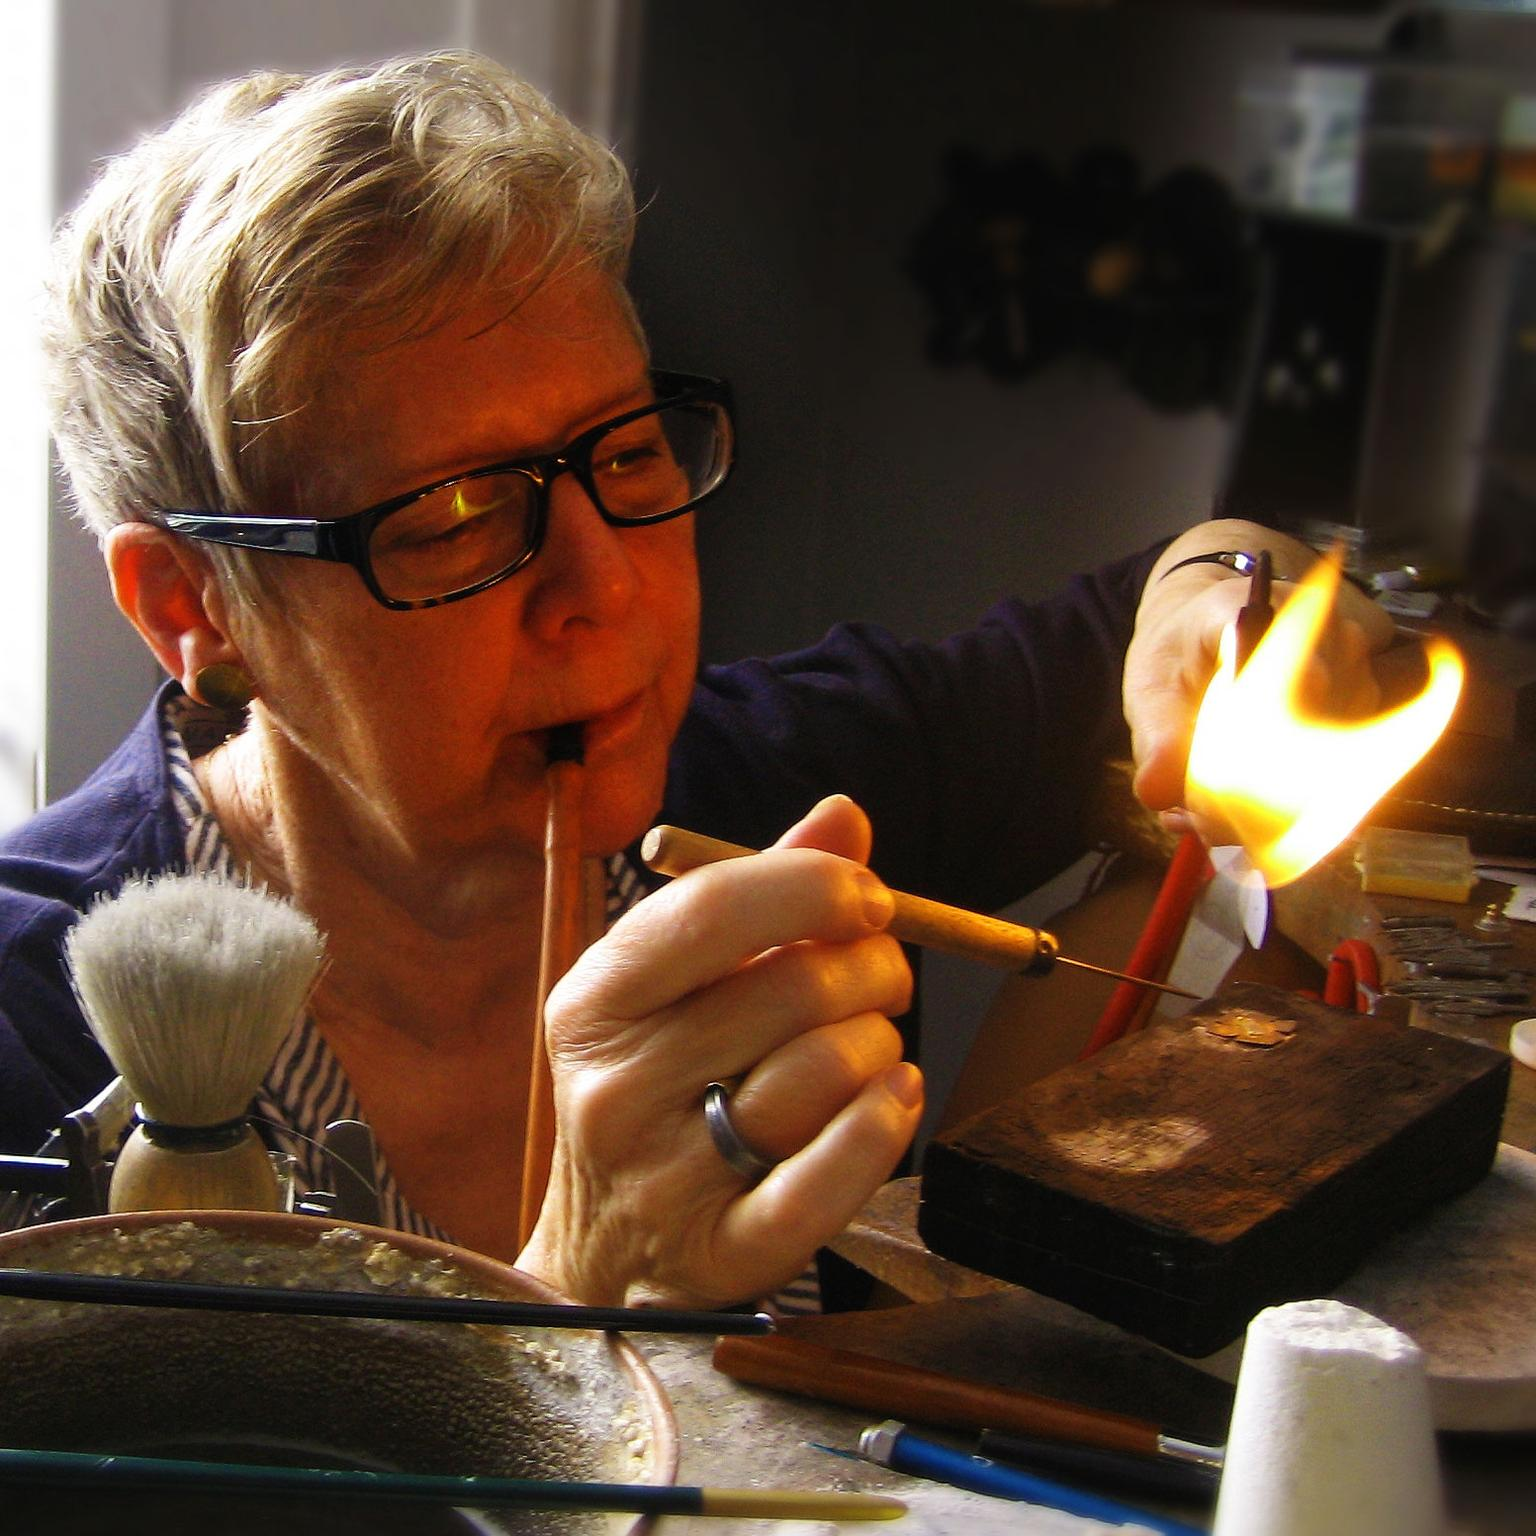 Jacqueline Mina soldering in her London studio